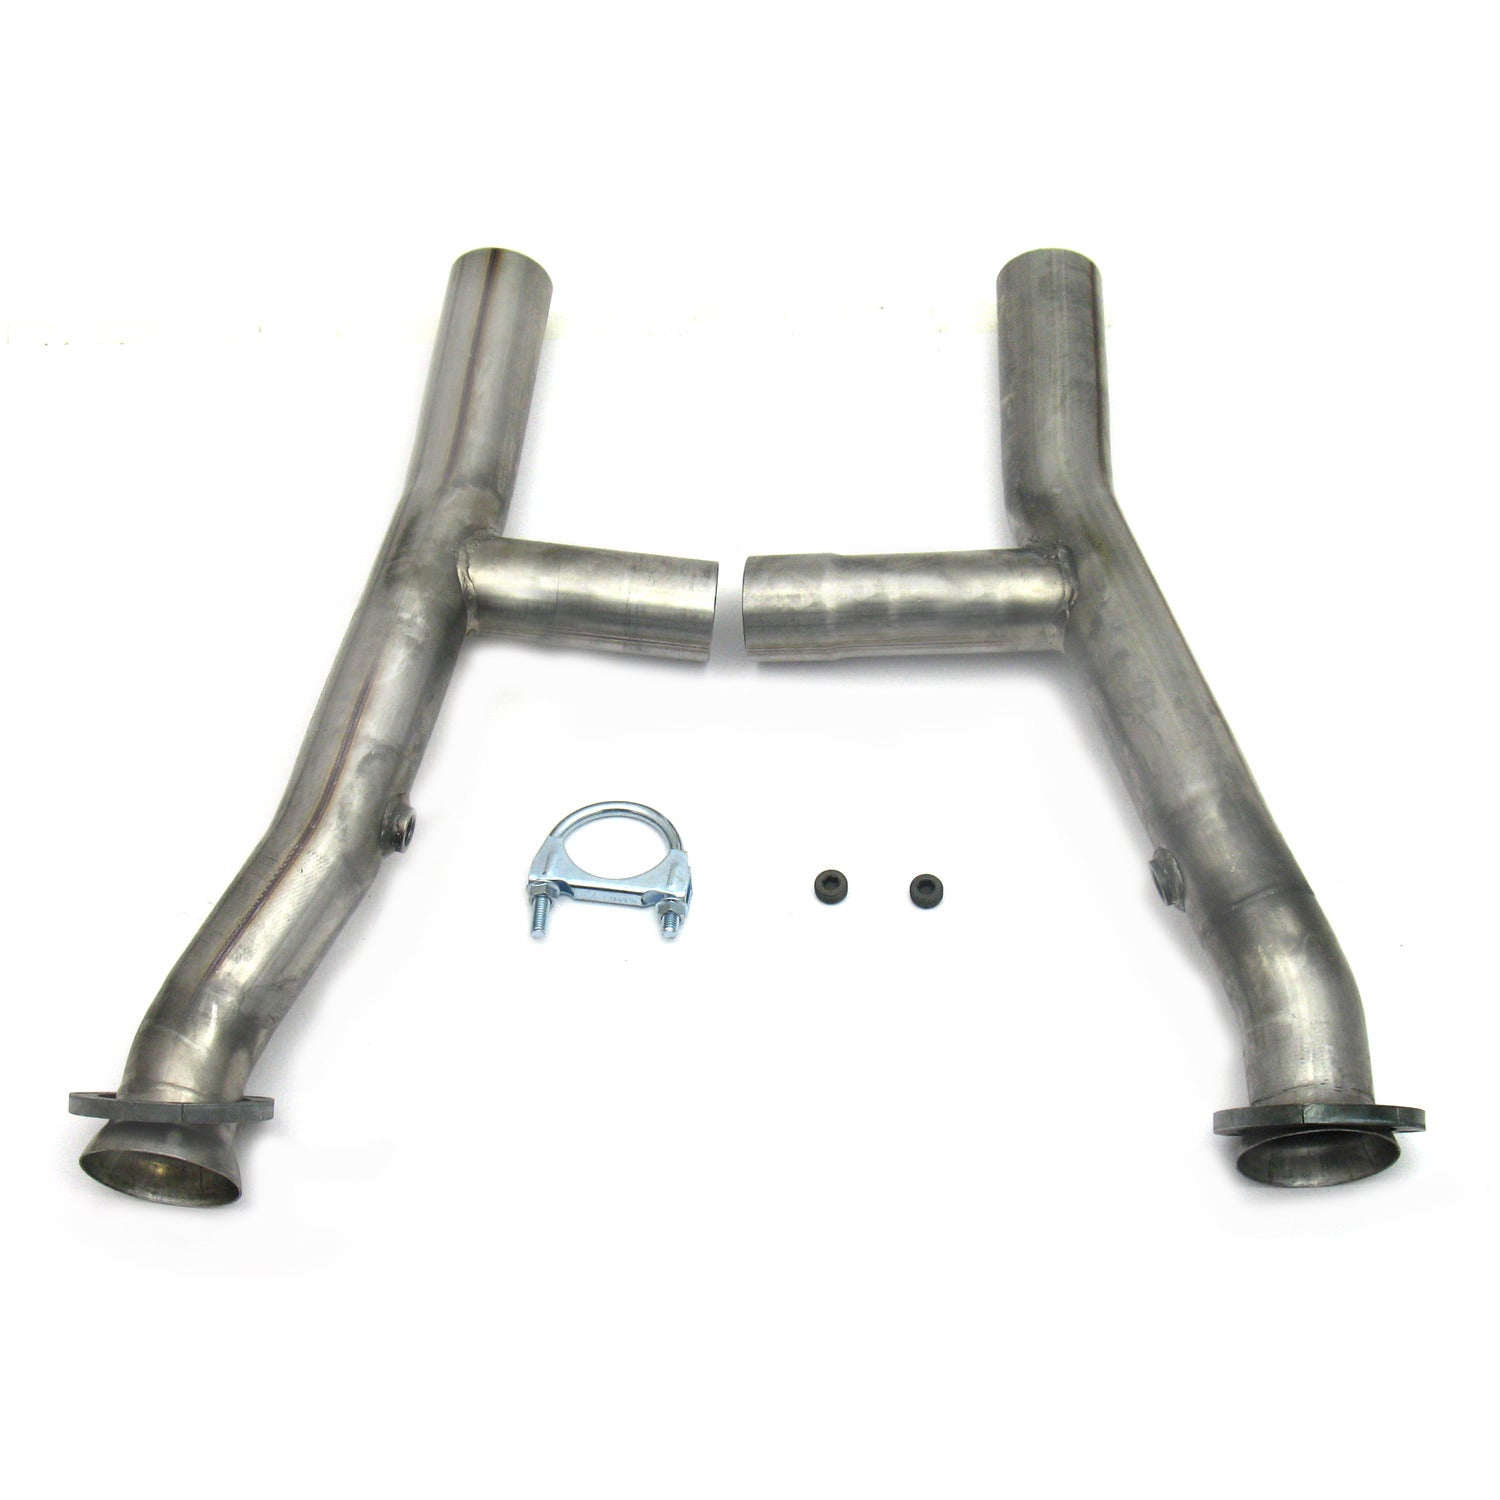 "JBA Performance Exhaust 6655SH 2.5"" Stainless Steel Mid-Pipe H-Pipe for 6655 and 6656, 390/427"